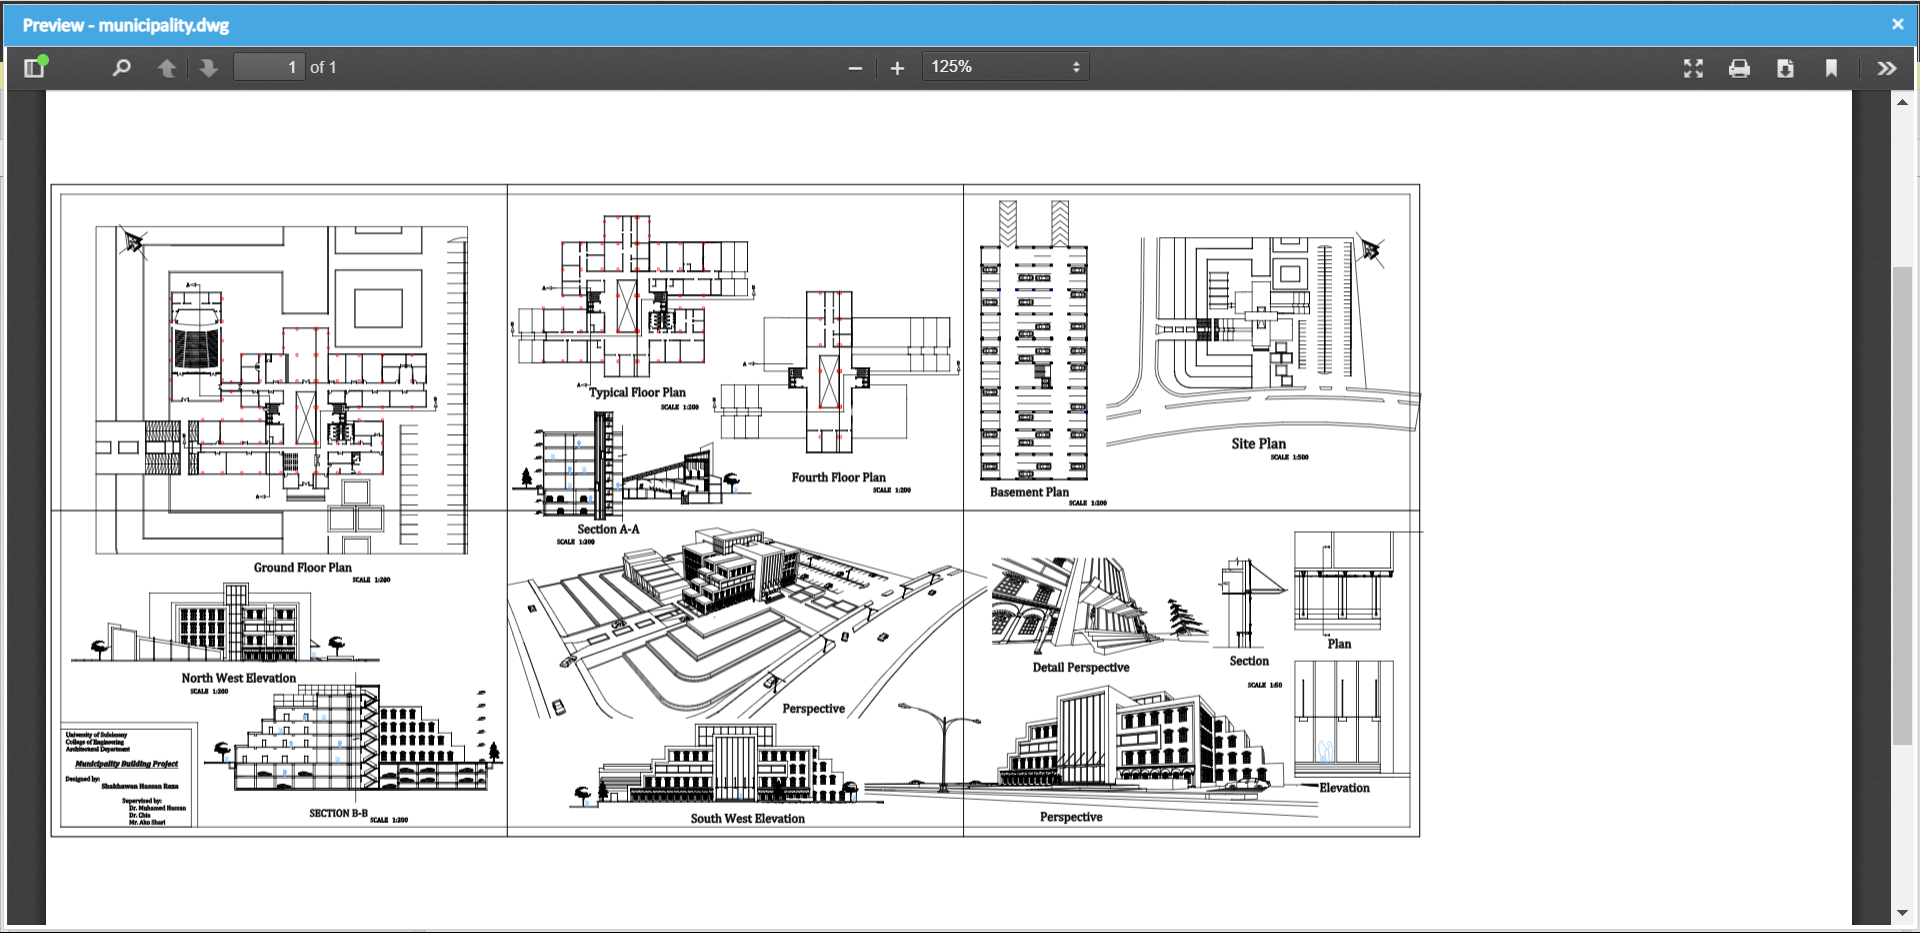 Preview DWG construction project